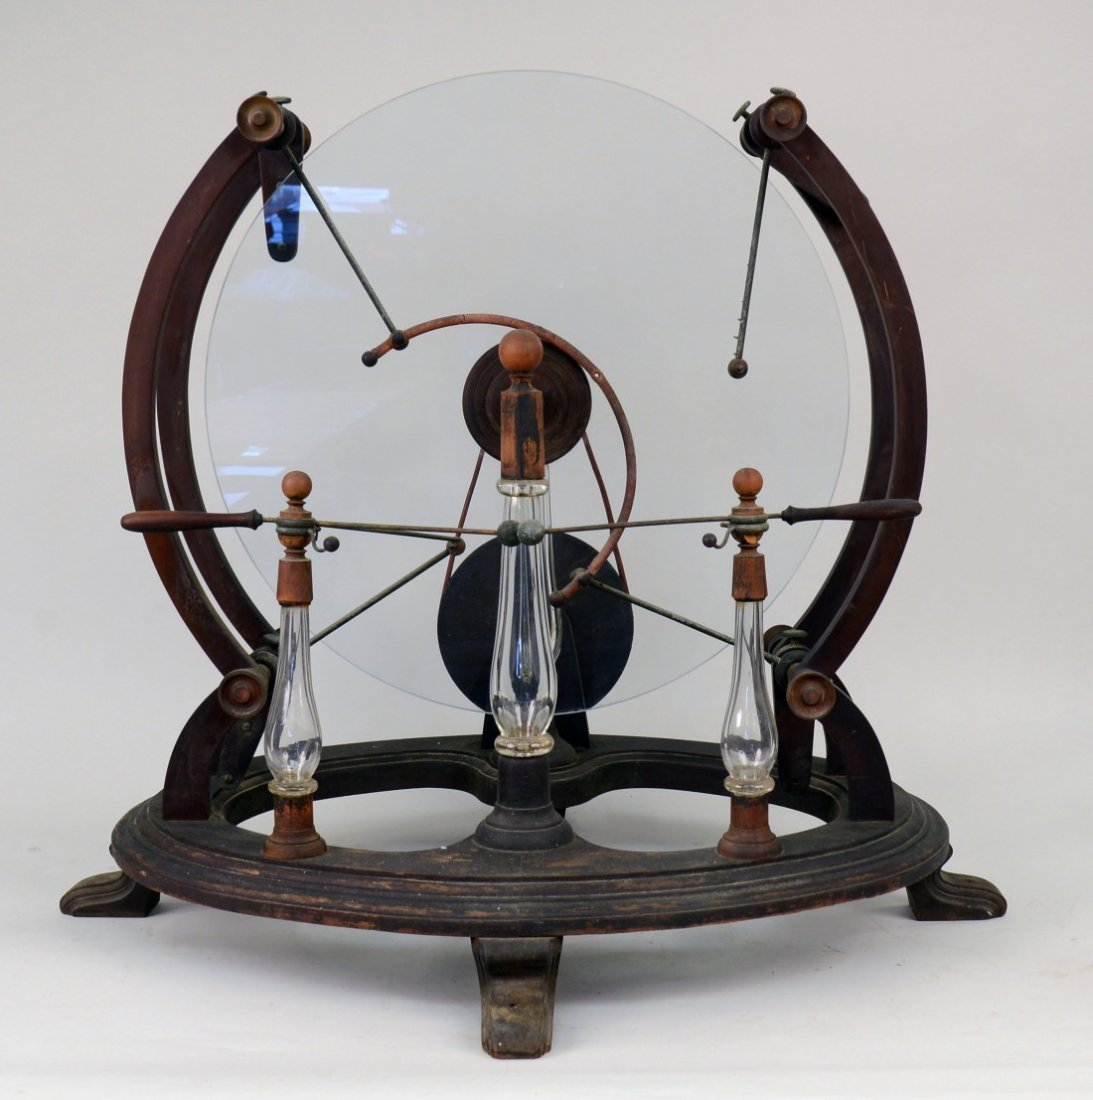 GLASS, WOOD AND BRASS STATIC MACHINE, early 19th centur